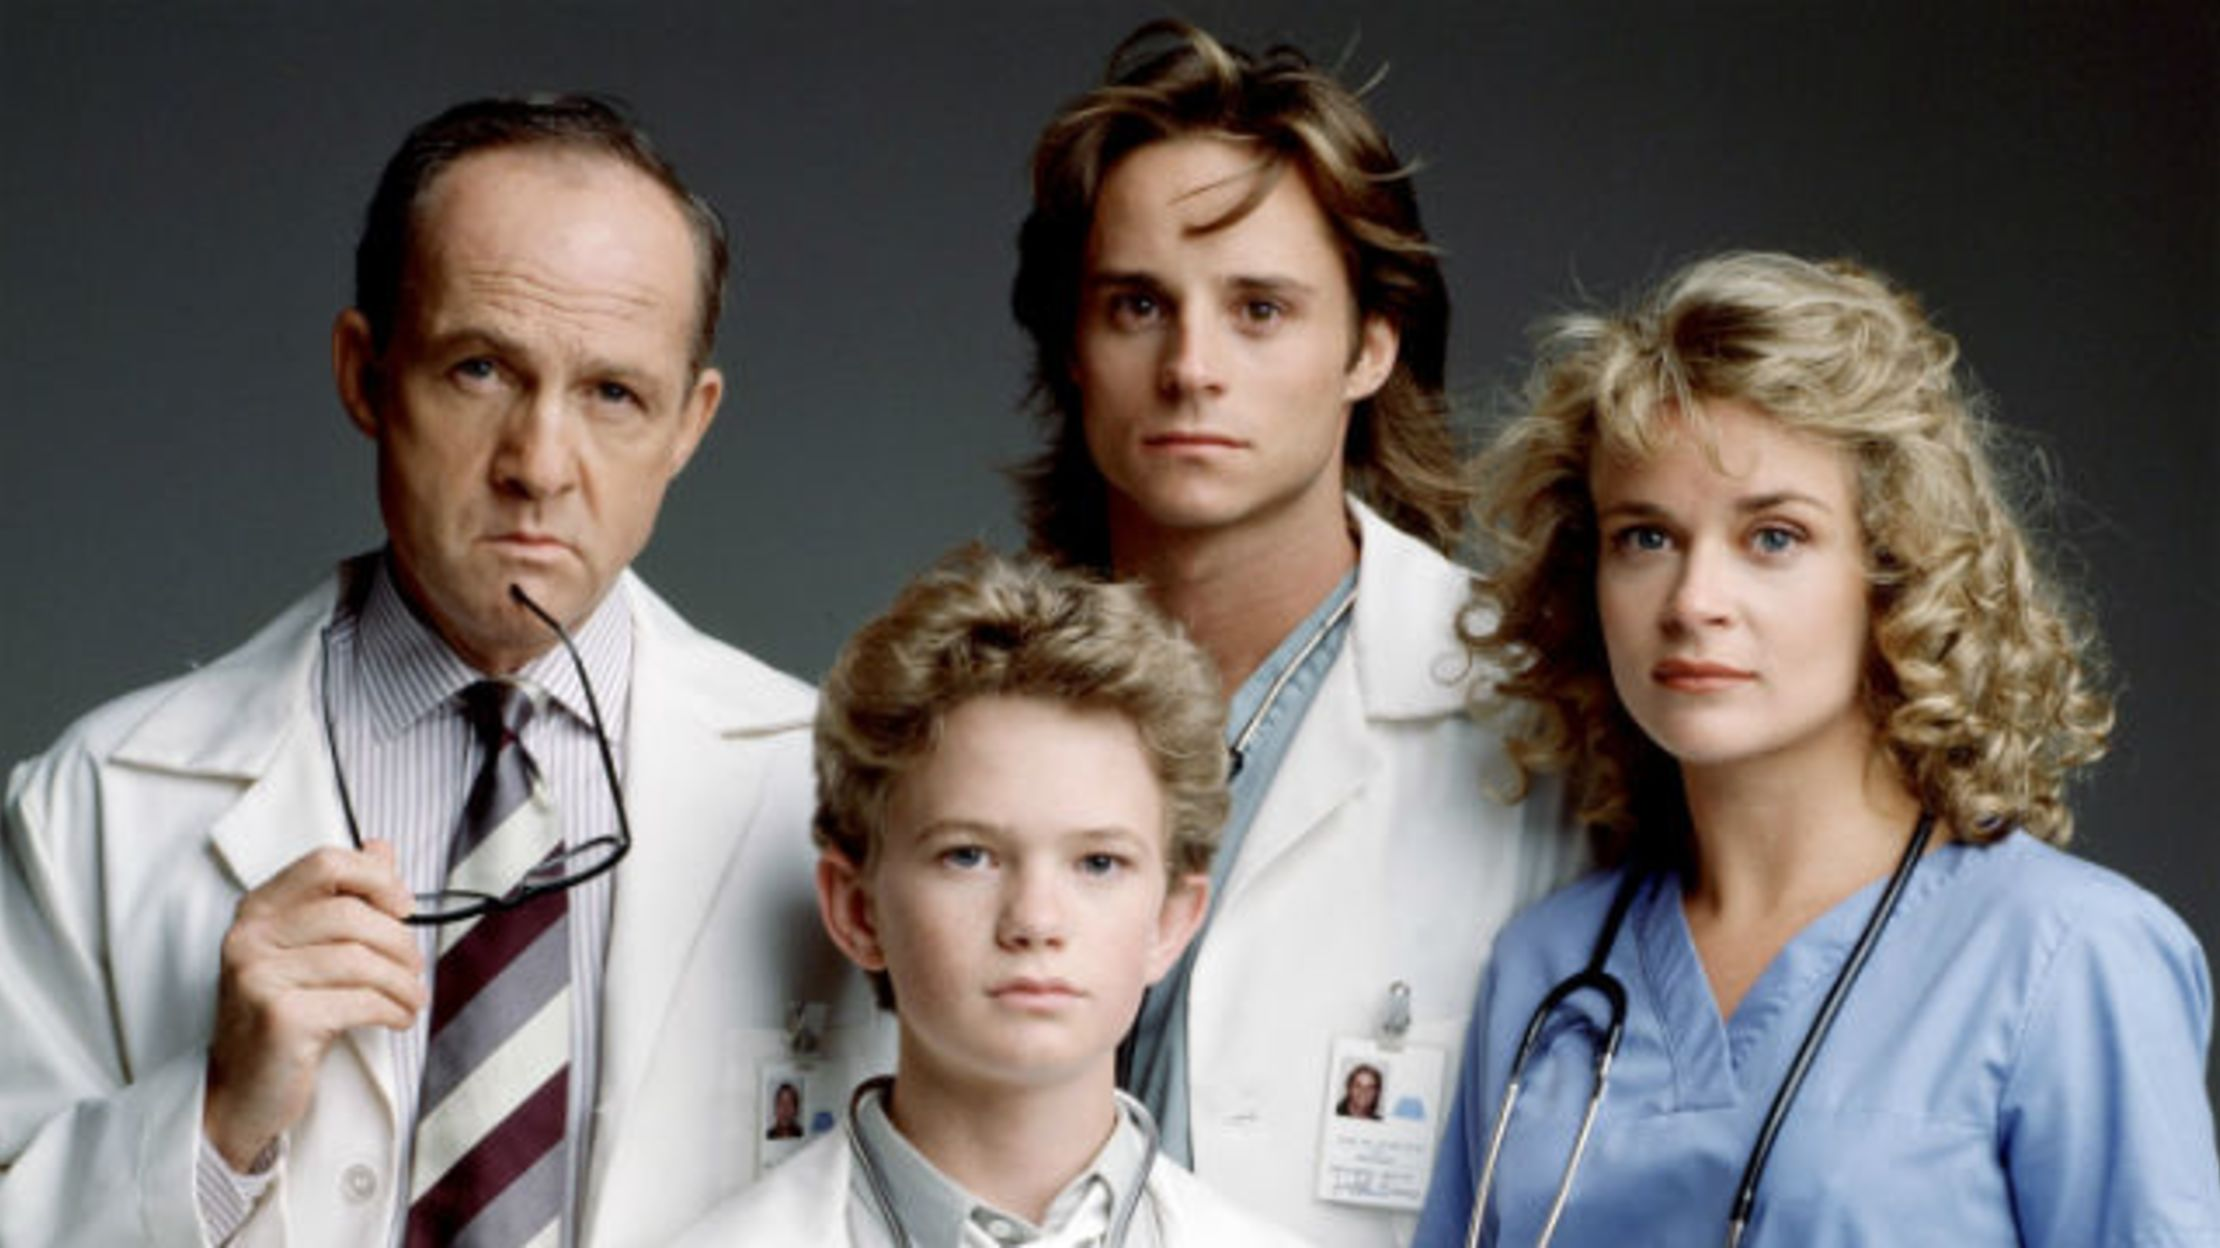 Disney+ Developing DOOGIE HOWSER Reboot with a Female Lead